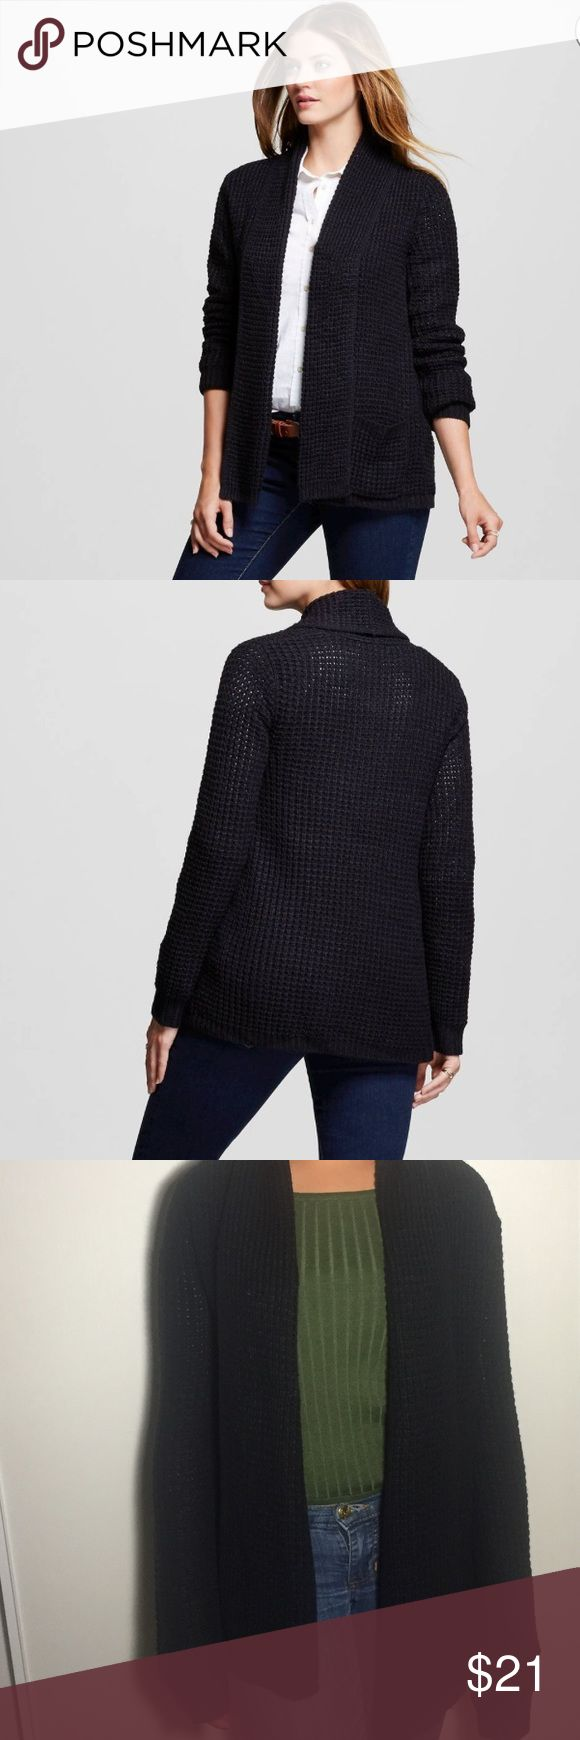 Women's Textured Open Layering Cardigan Designed for convenience, the Women's Textured Open Layering Cardigan by Merona™ gives you easy on/easy off style for climate control. This classic cut cardigan instantly becomes a wardrobe staple. Merona Sweaters Cardigans